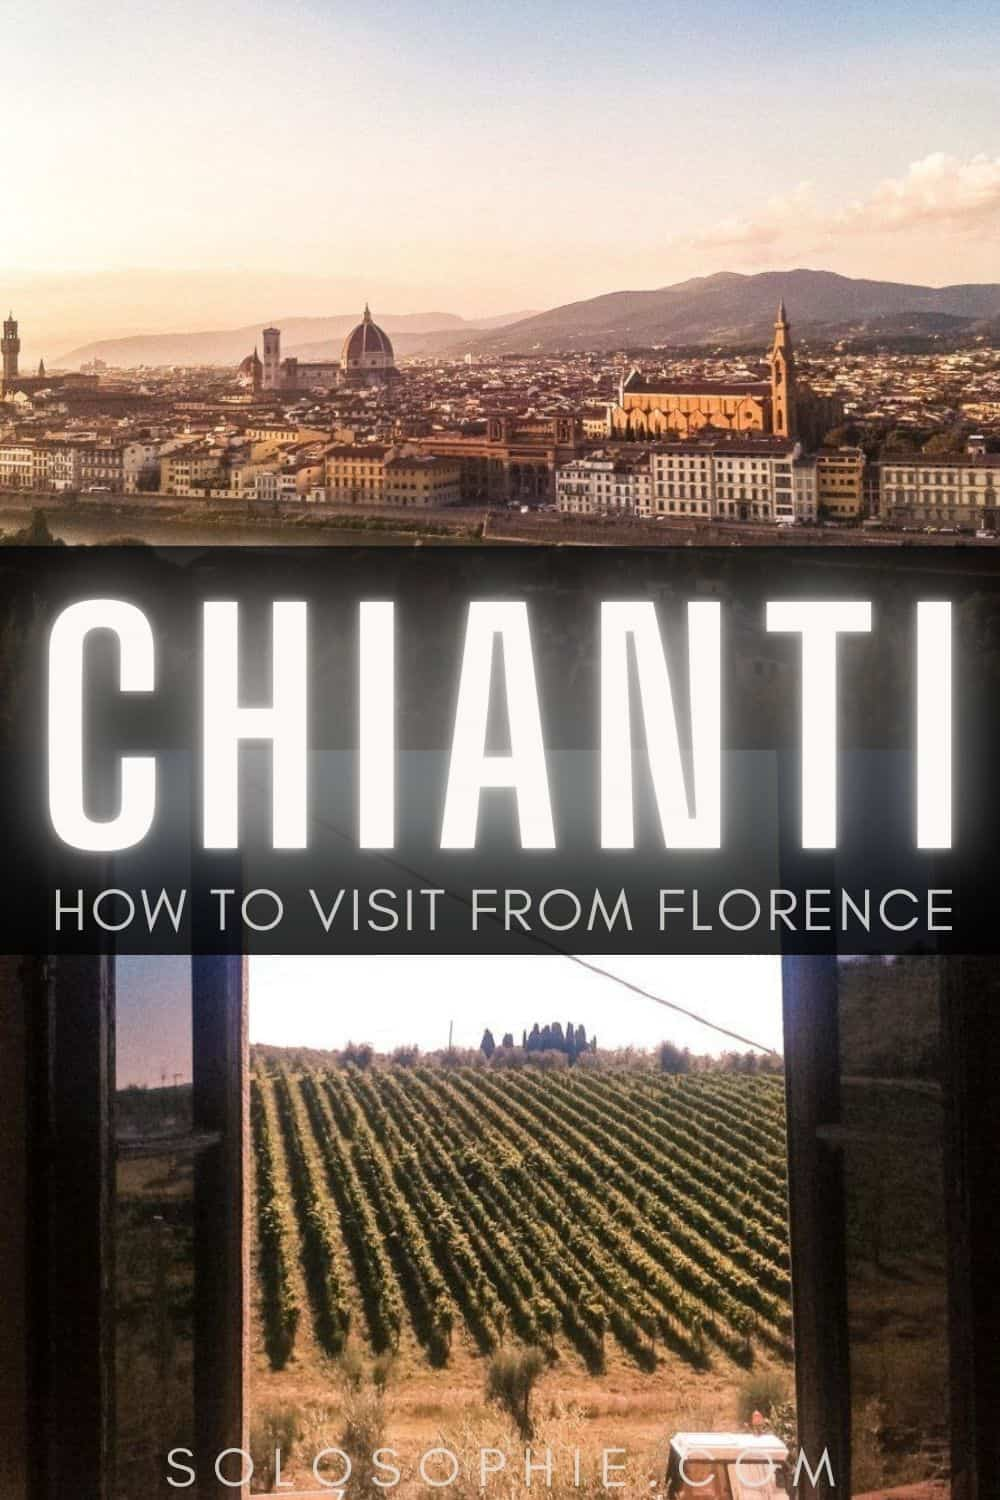 Chianti Italy guide: How to visit Chianti as a day trip frolm Florence Italy